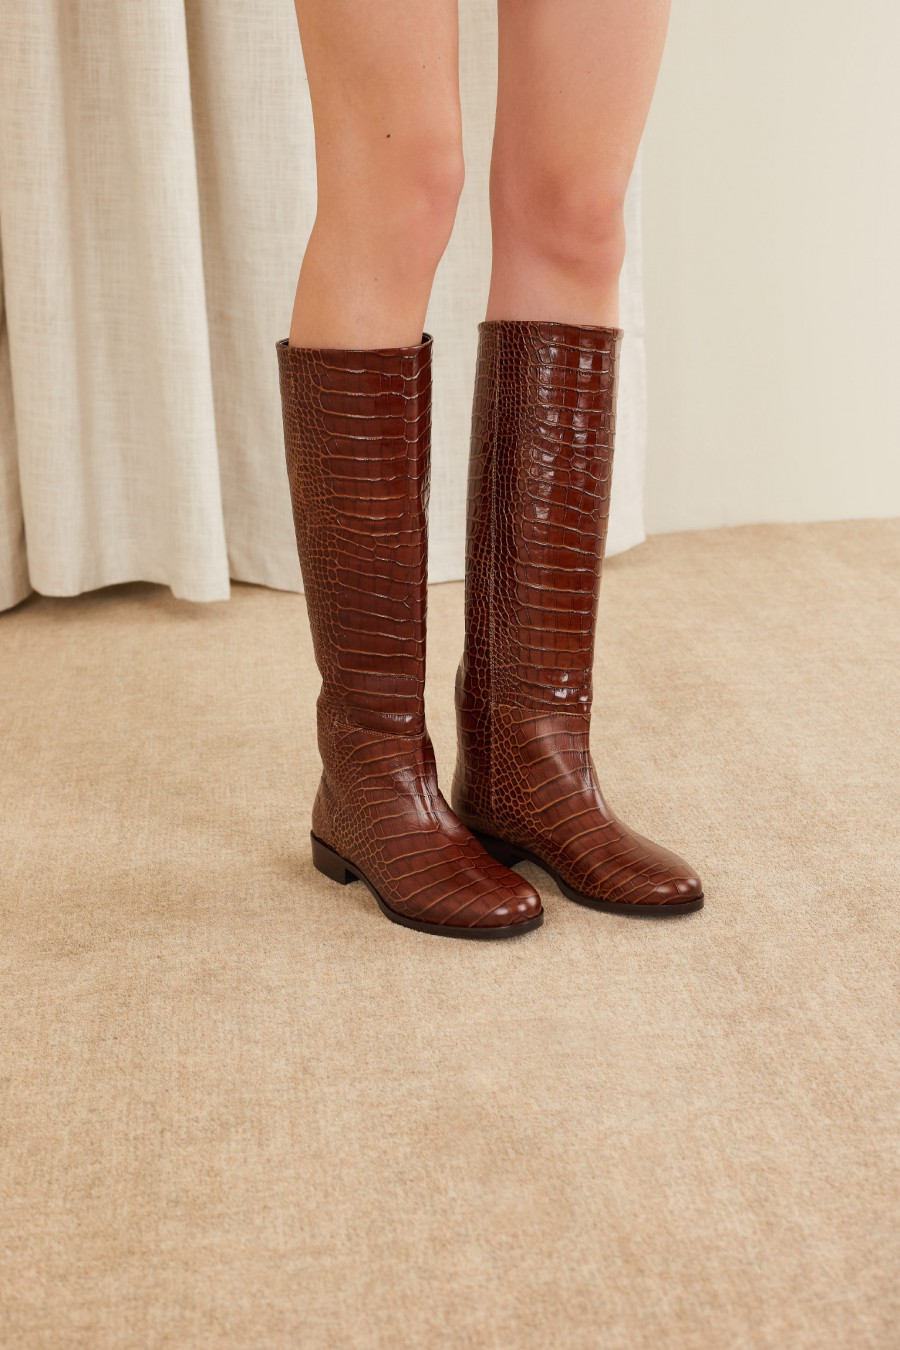 croco embossed brown leather boots